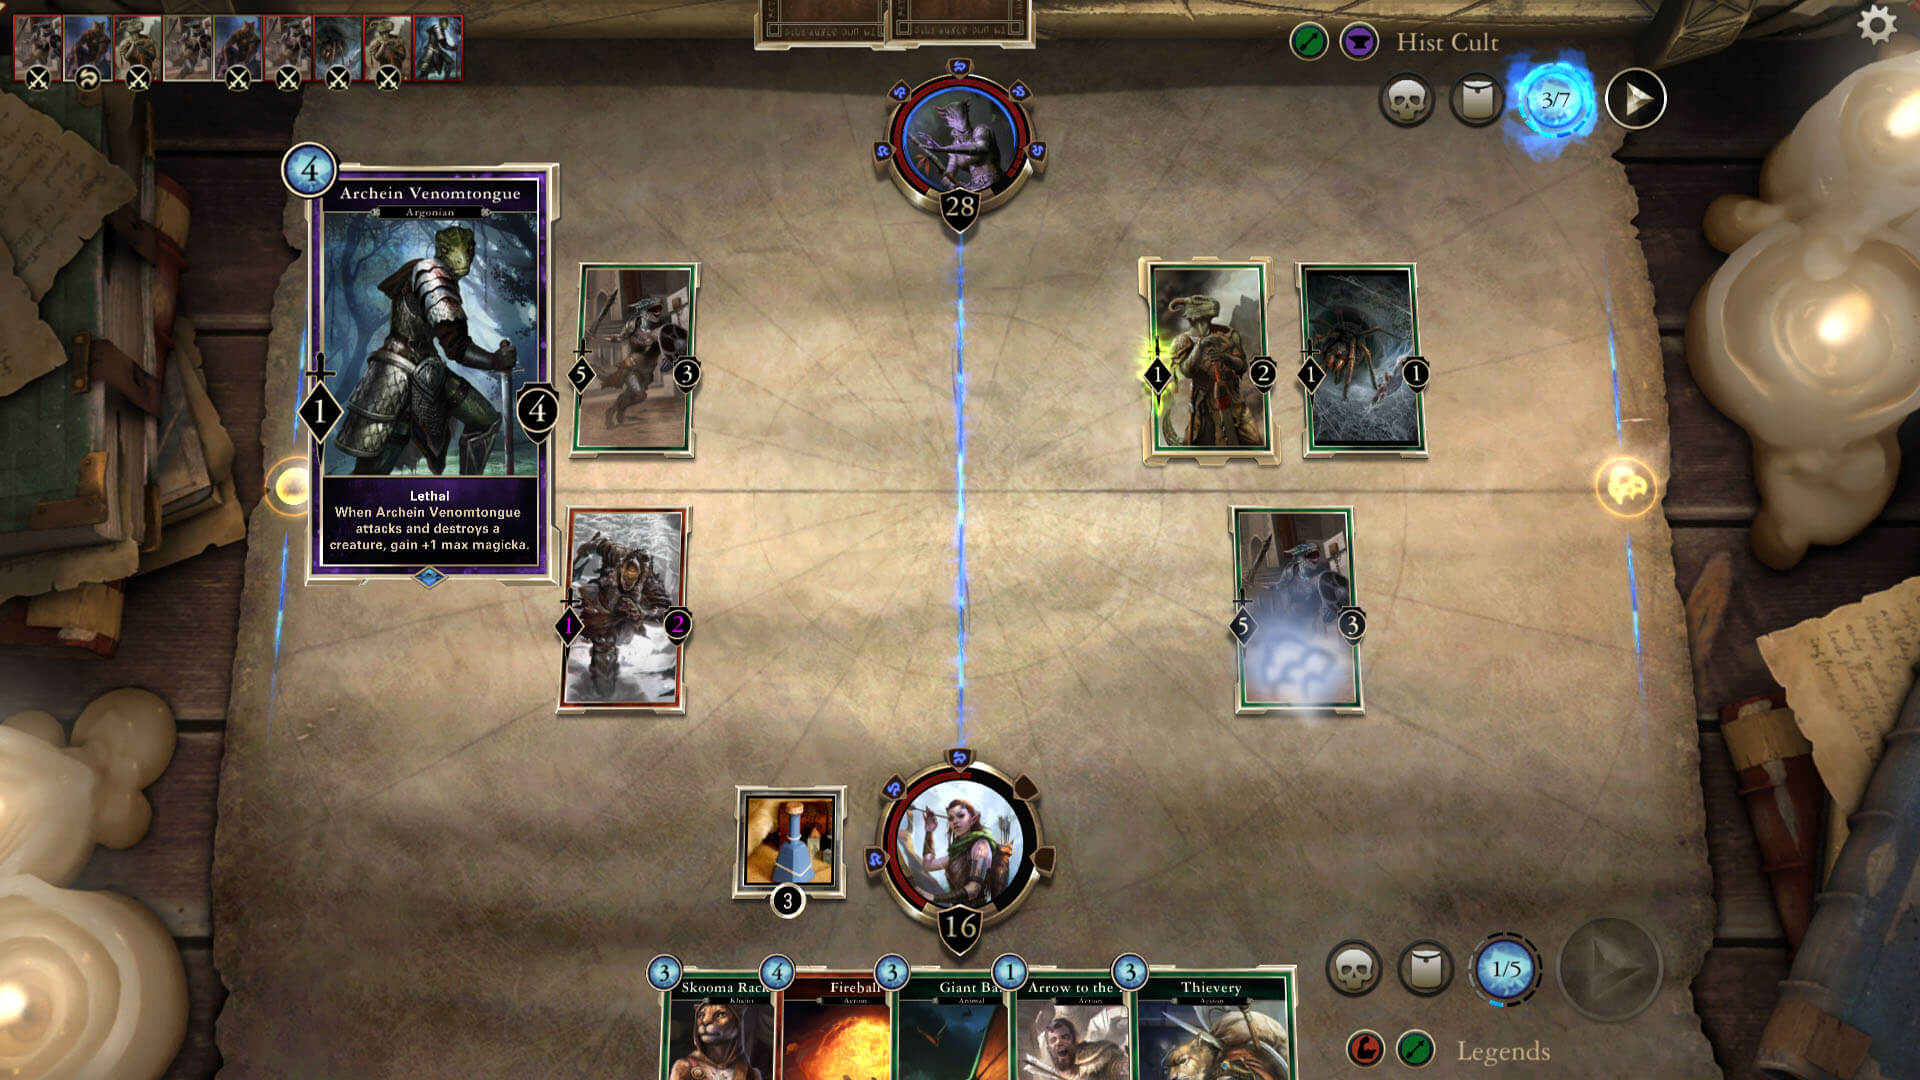 The Elder Scrolls Legends free to play